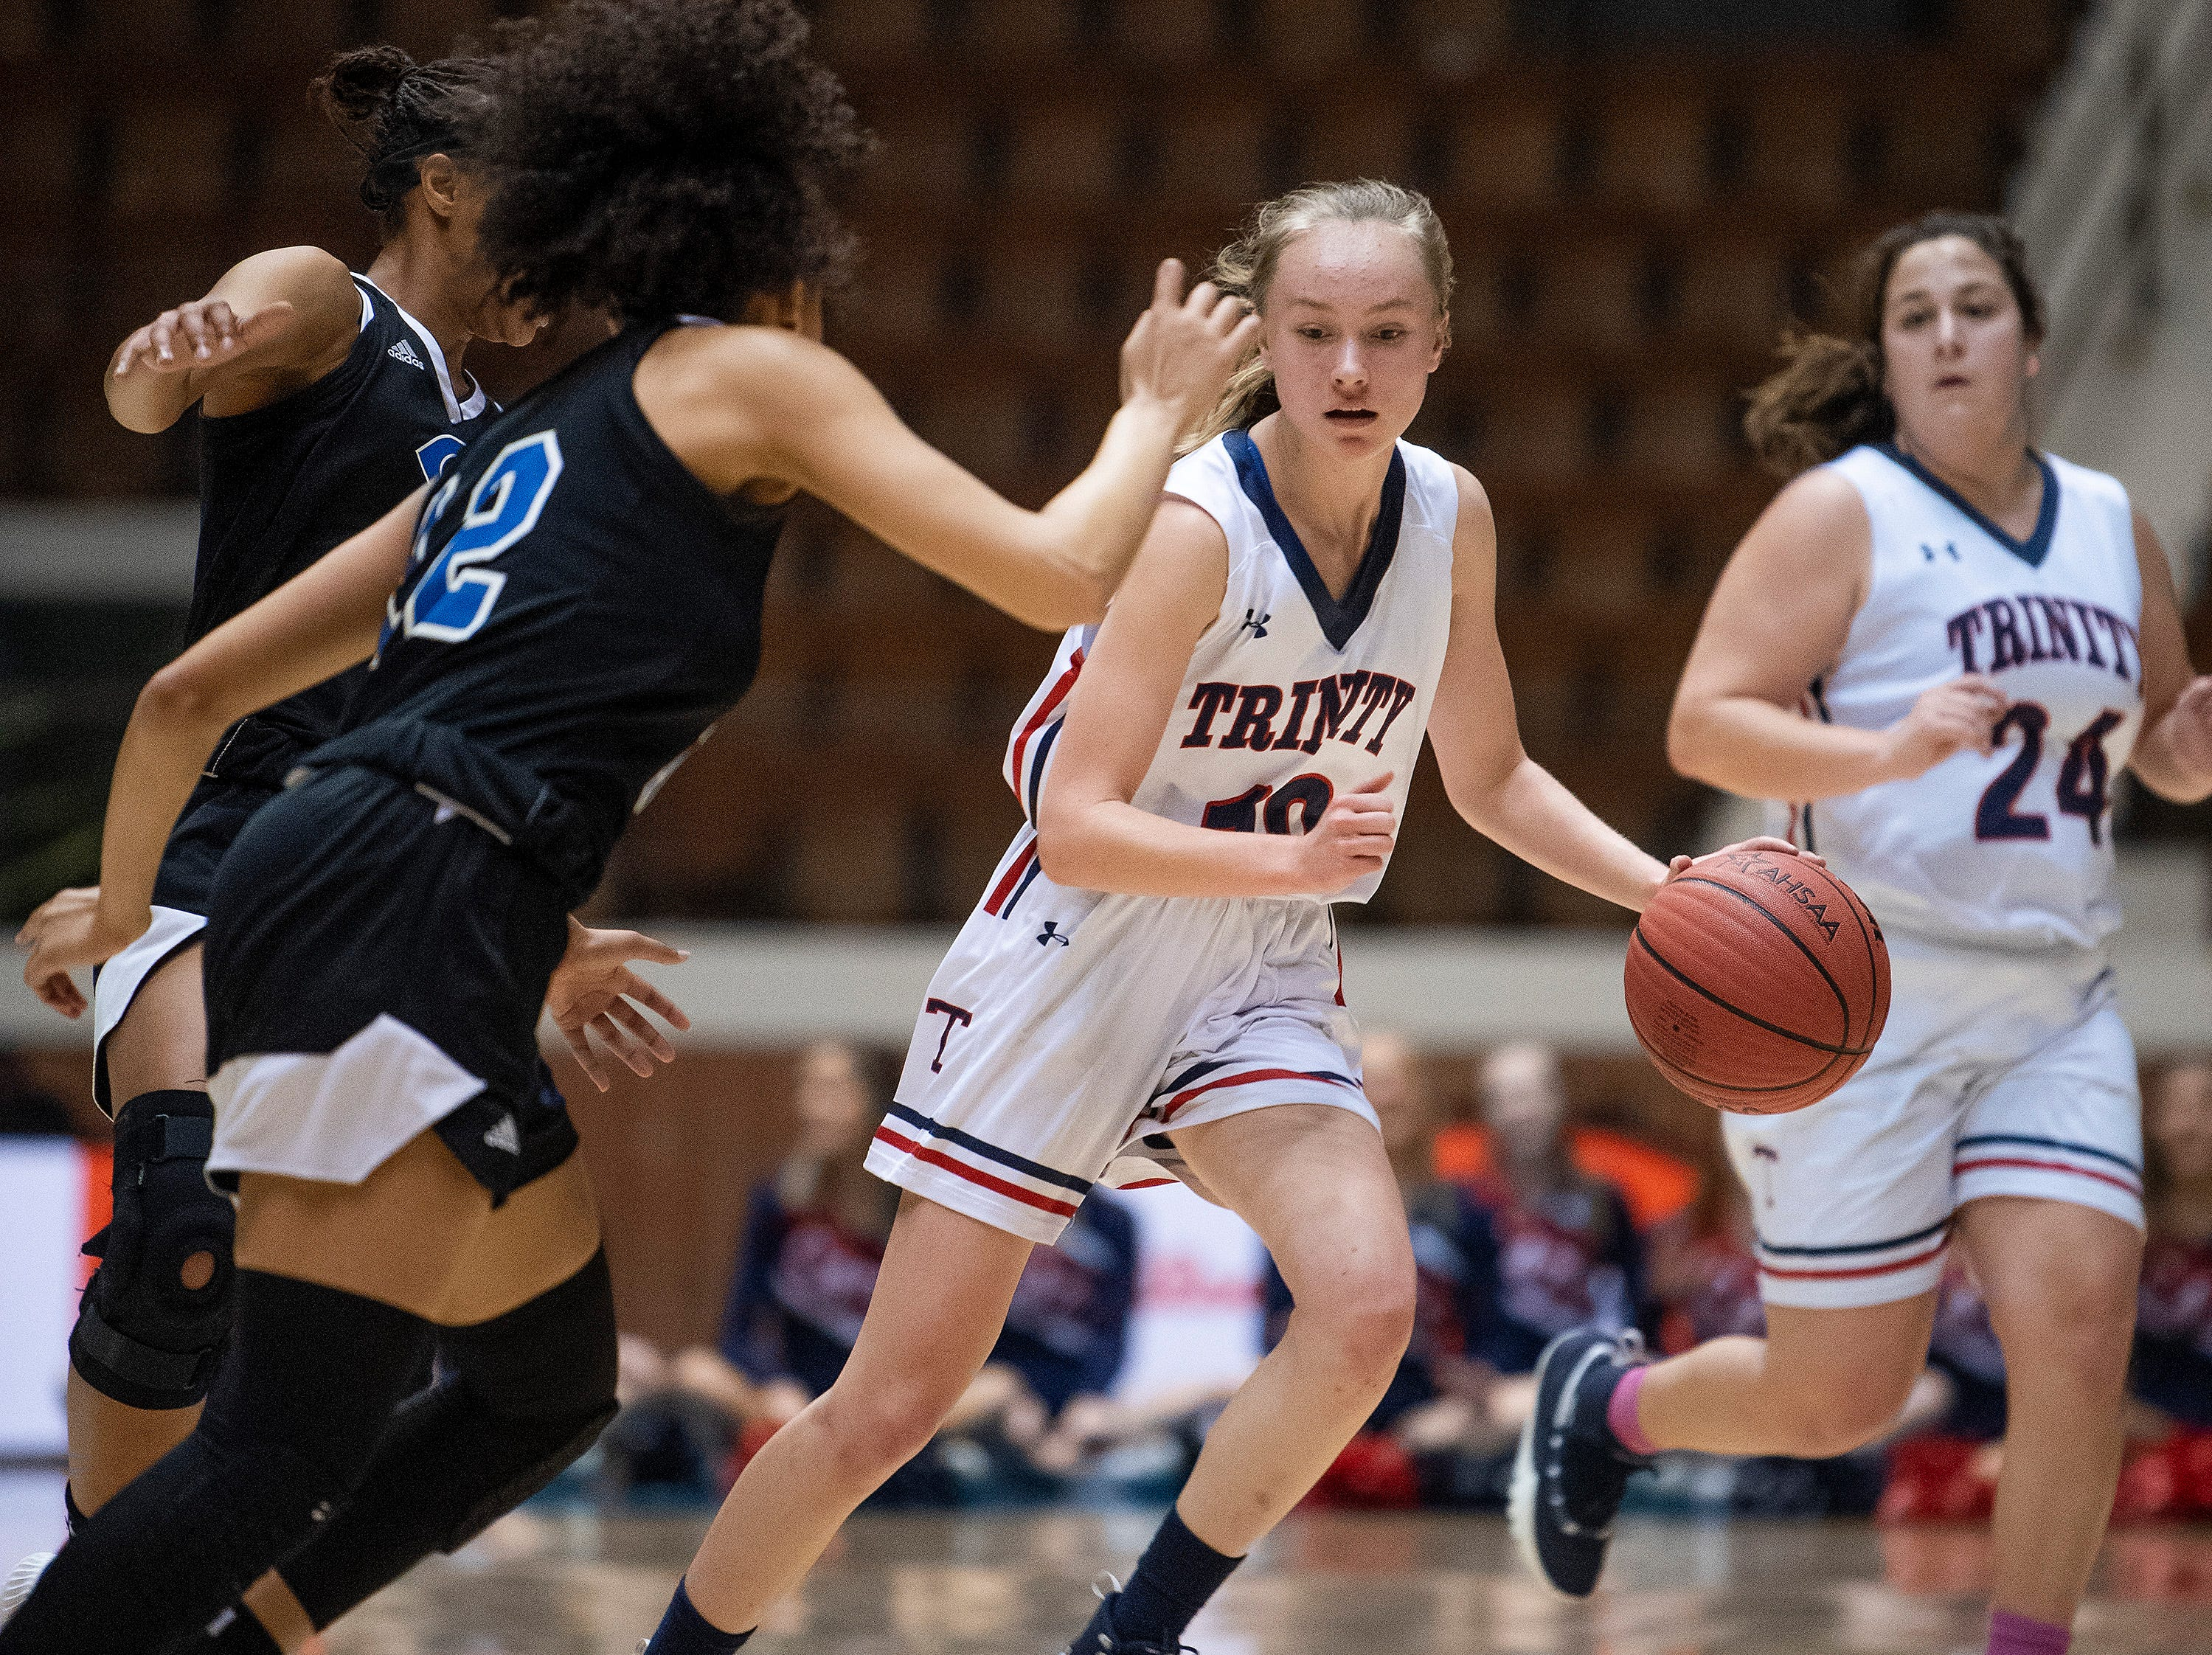 Trinity's Emma Kate Smith against Childersburg in AHSAA Regional action at Garrett Coliseum in Montgomery, Ala., on Monday February 18, 2019.